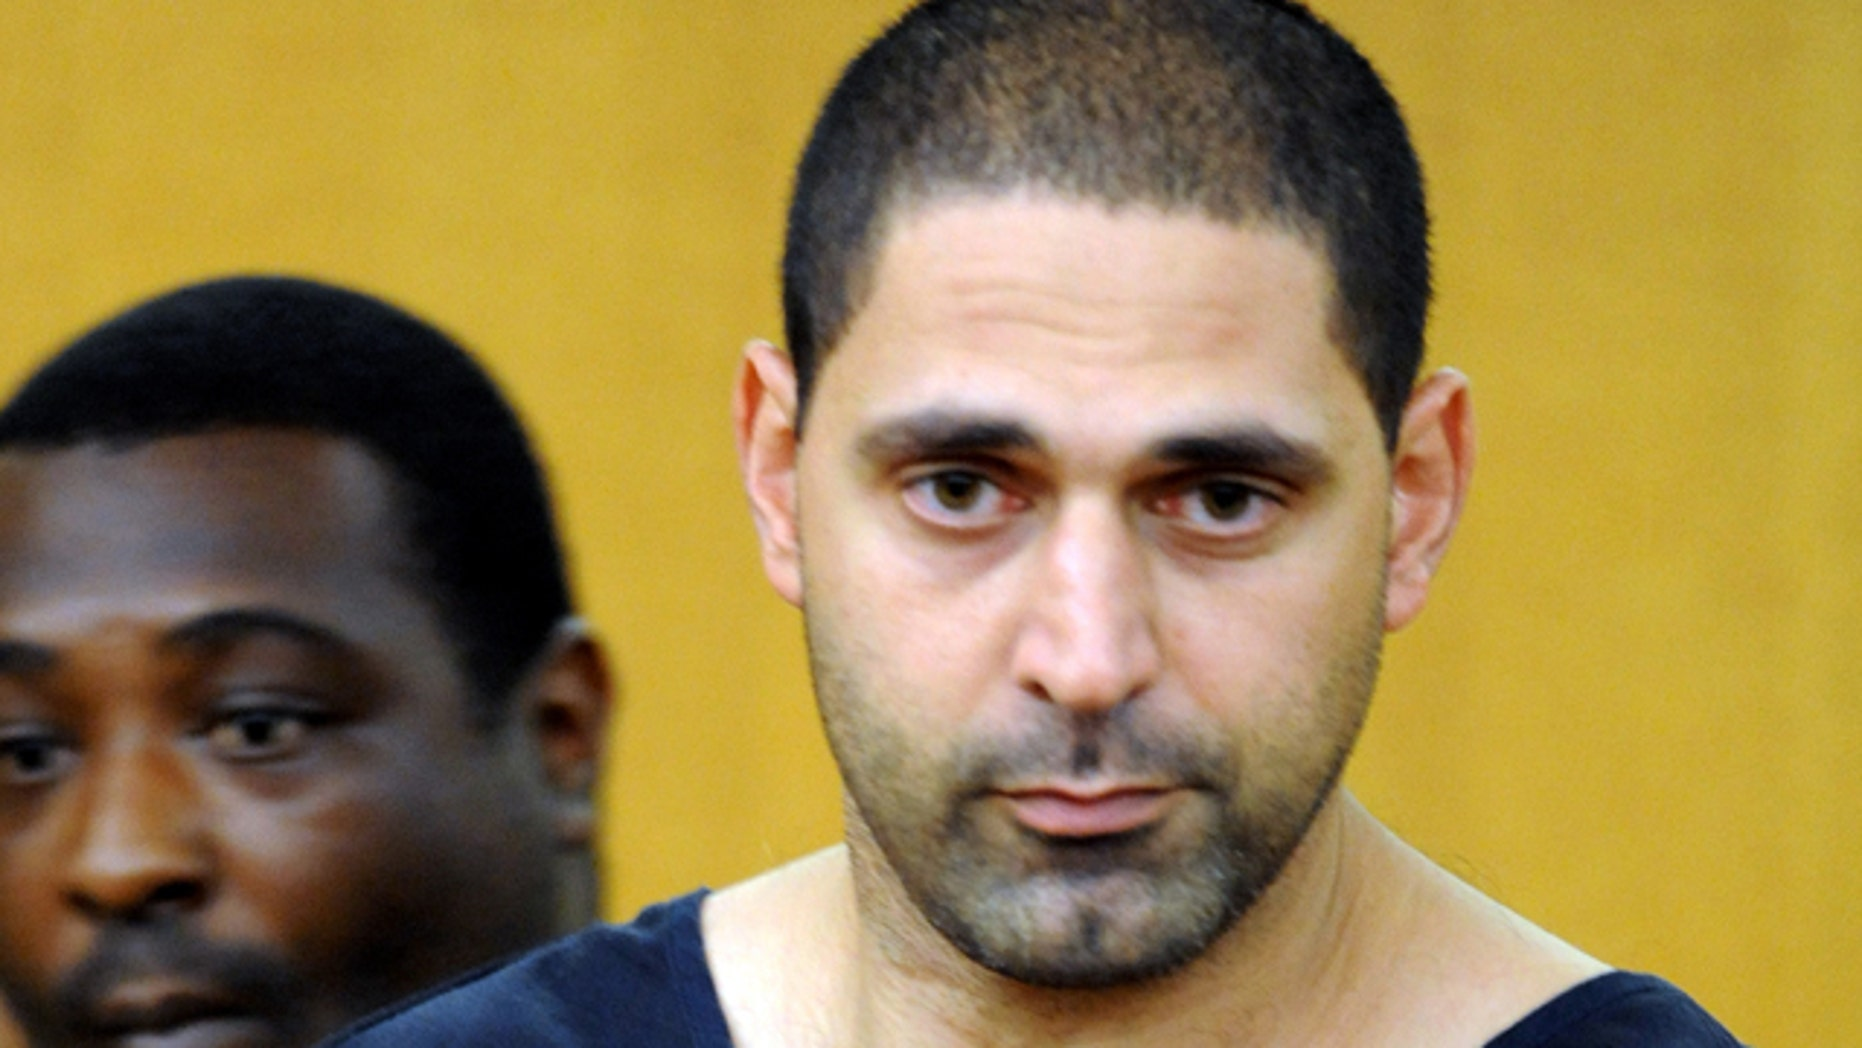 Aug. 13, 2010: In this file photo Elias Abuelazam, attends an extradition hearing in Fulton County Superior Court  in Atlanta.